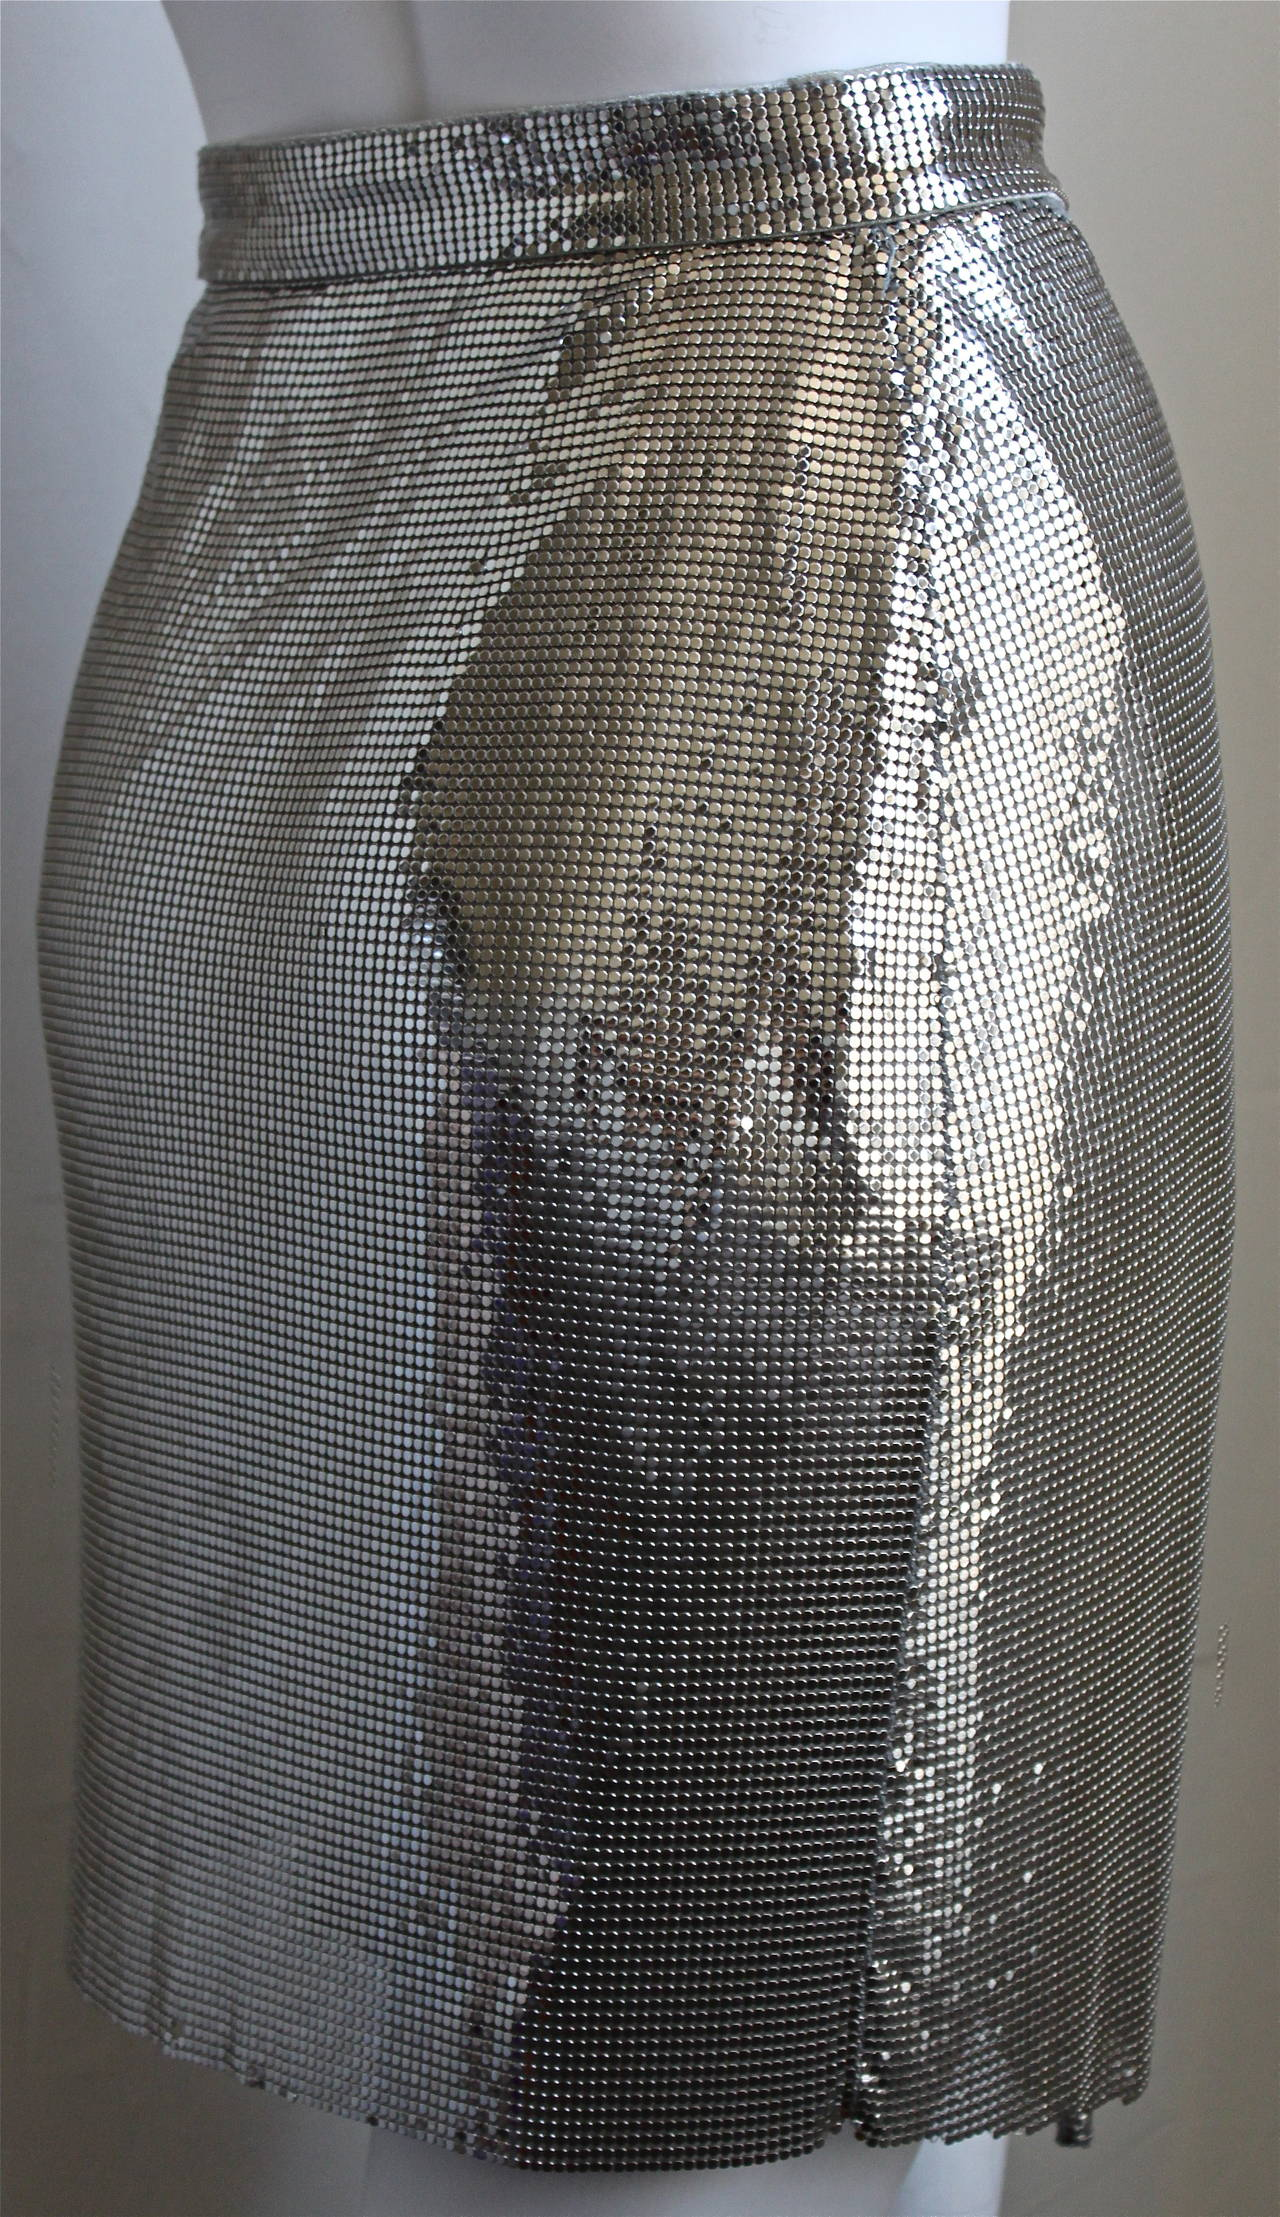 1994 Gianni Versace Couture Silver Oroton Chainmail Top